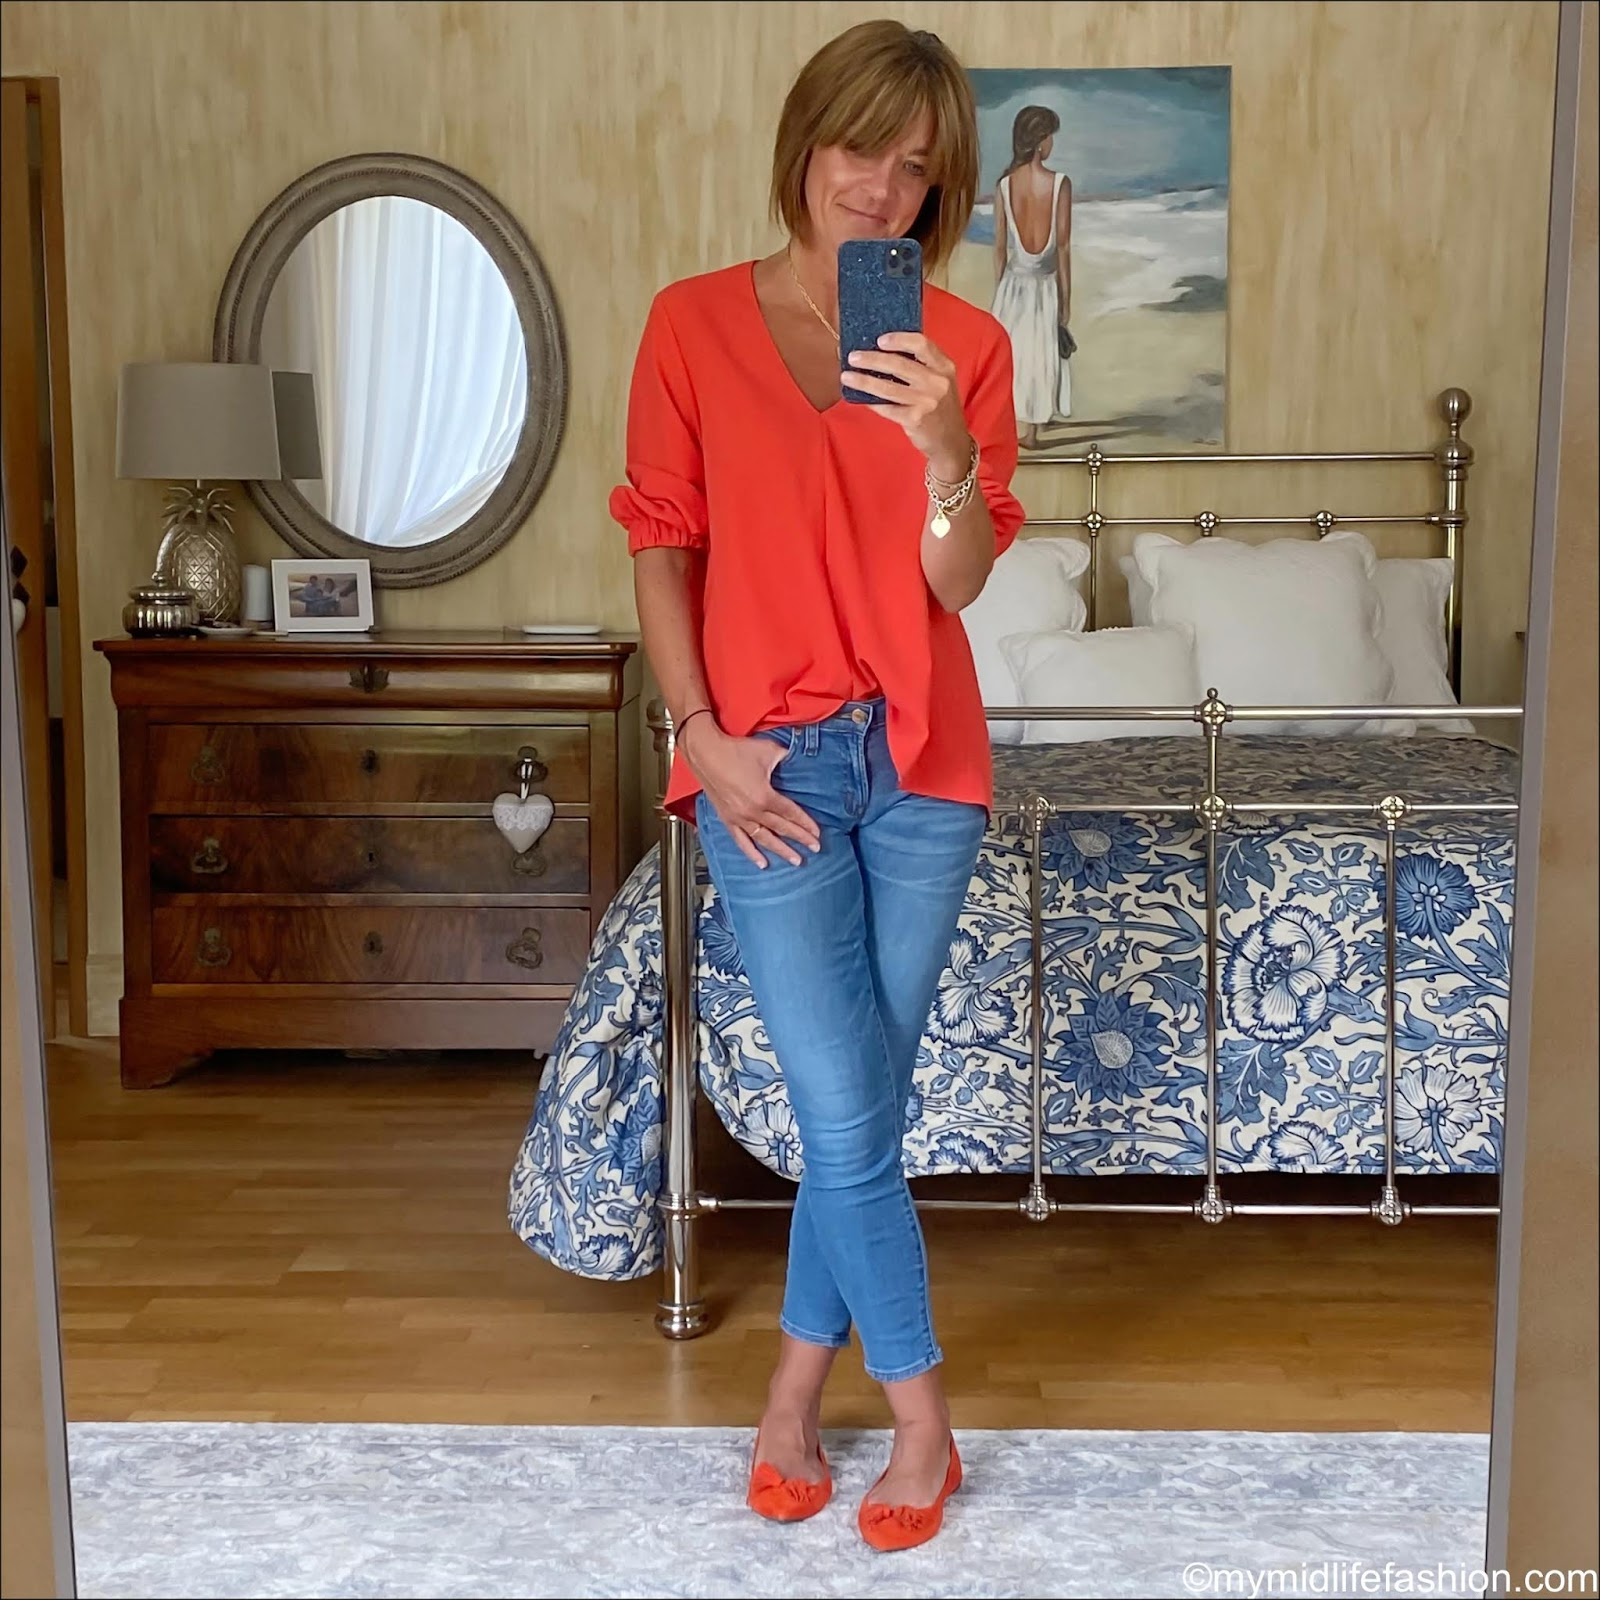 my midlife fashion, tibi red v neck top, j crew 8 inch toothpick jeans, j crew suede tassel ballet flats